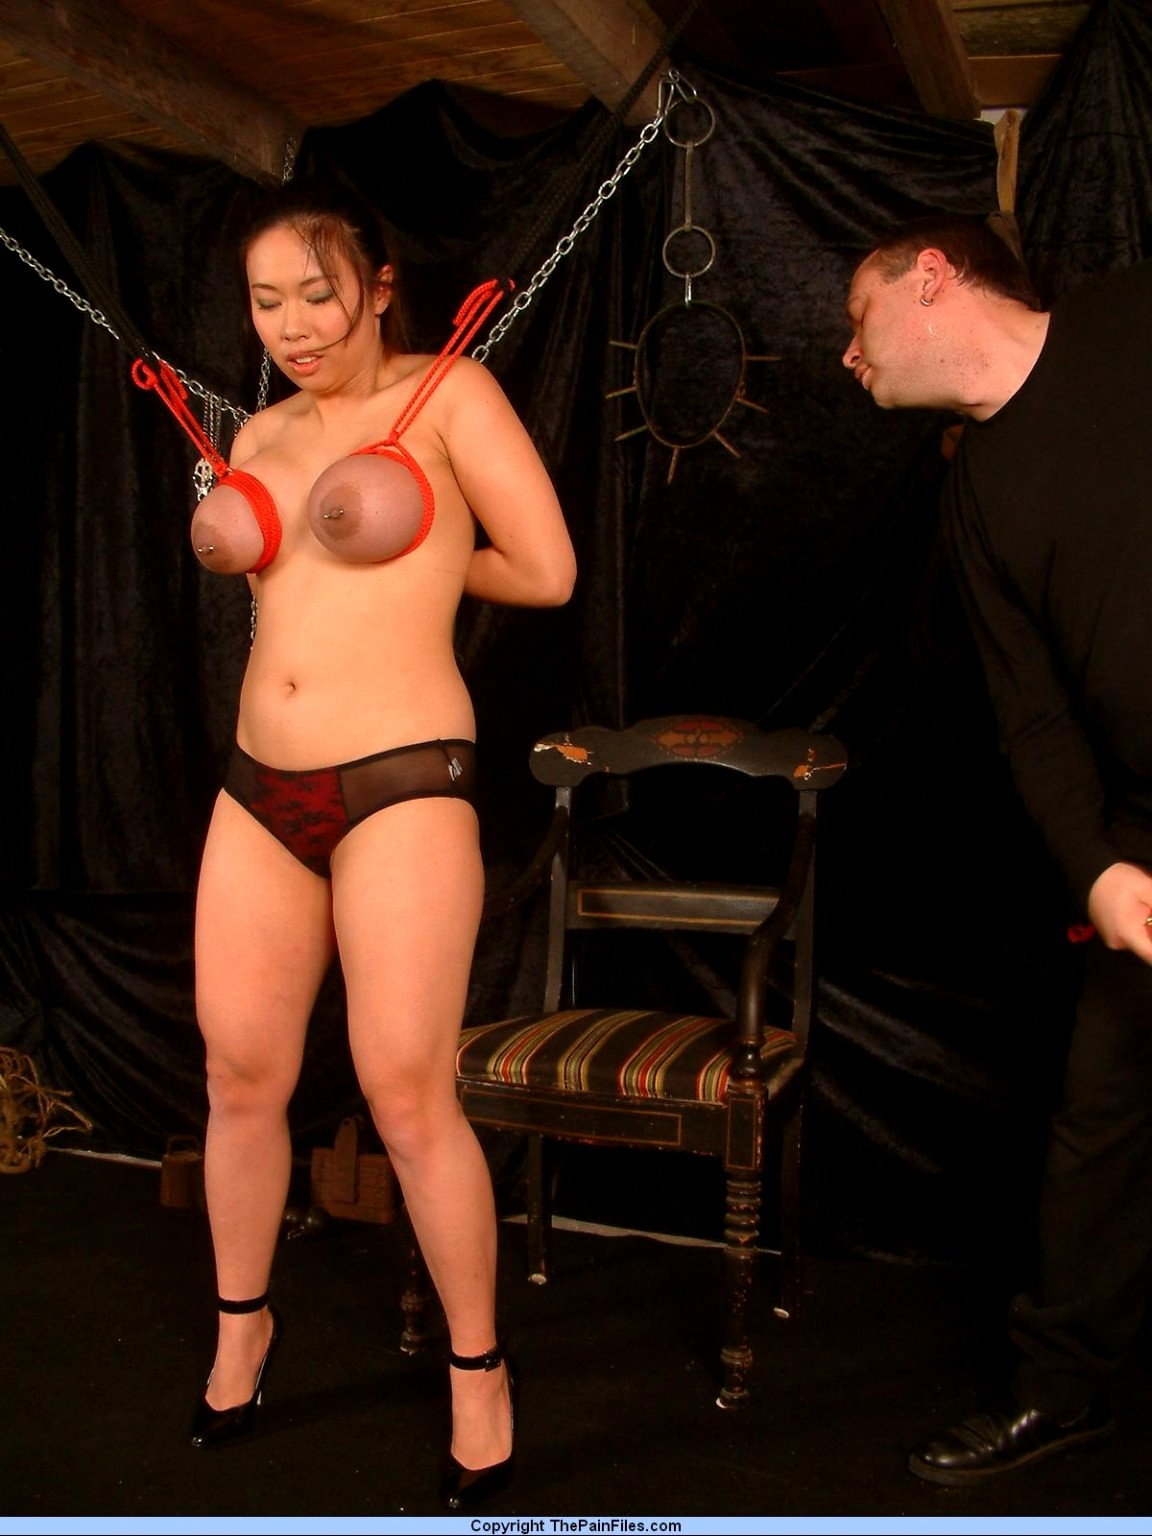 Paddle spank whip woman-3501